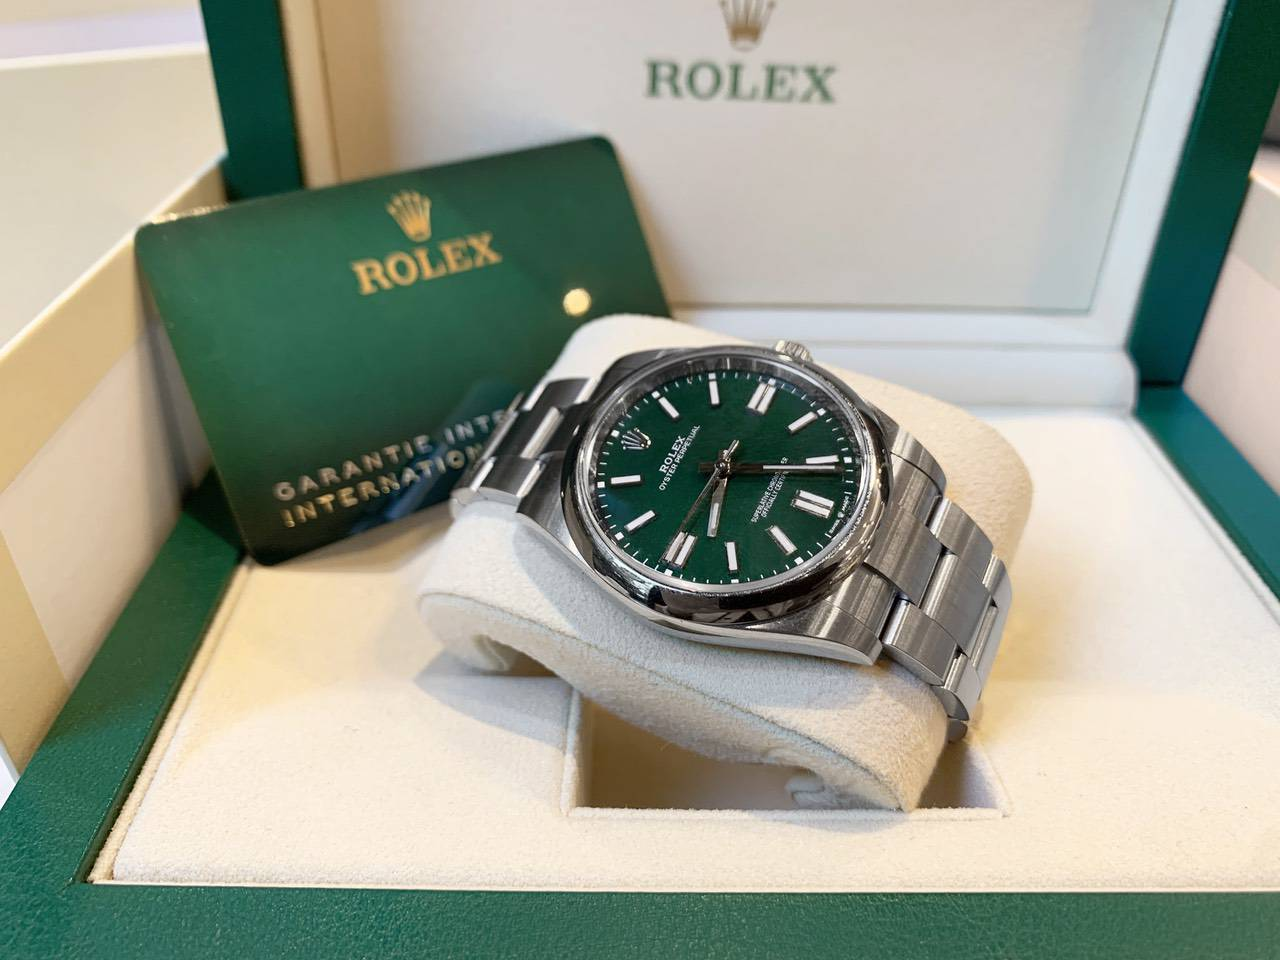 Rolex-Oyster-Perpetual-Green-124300-0